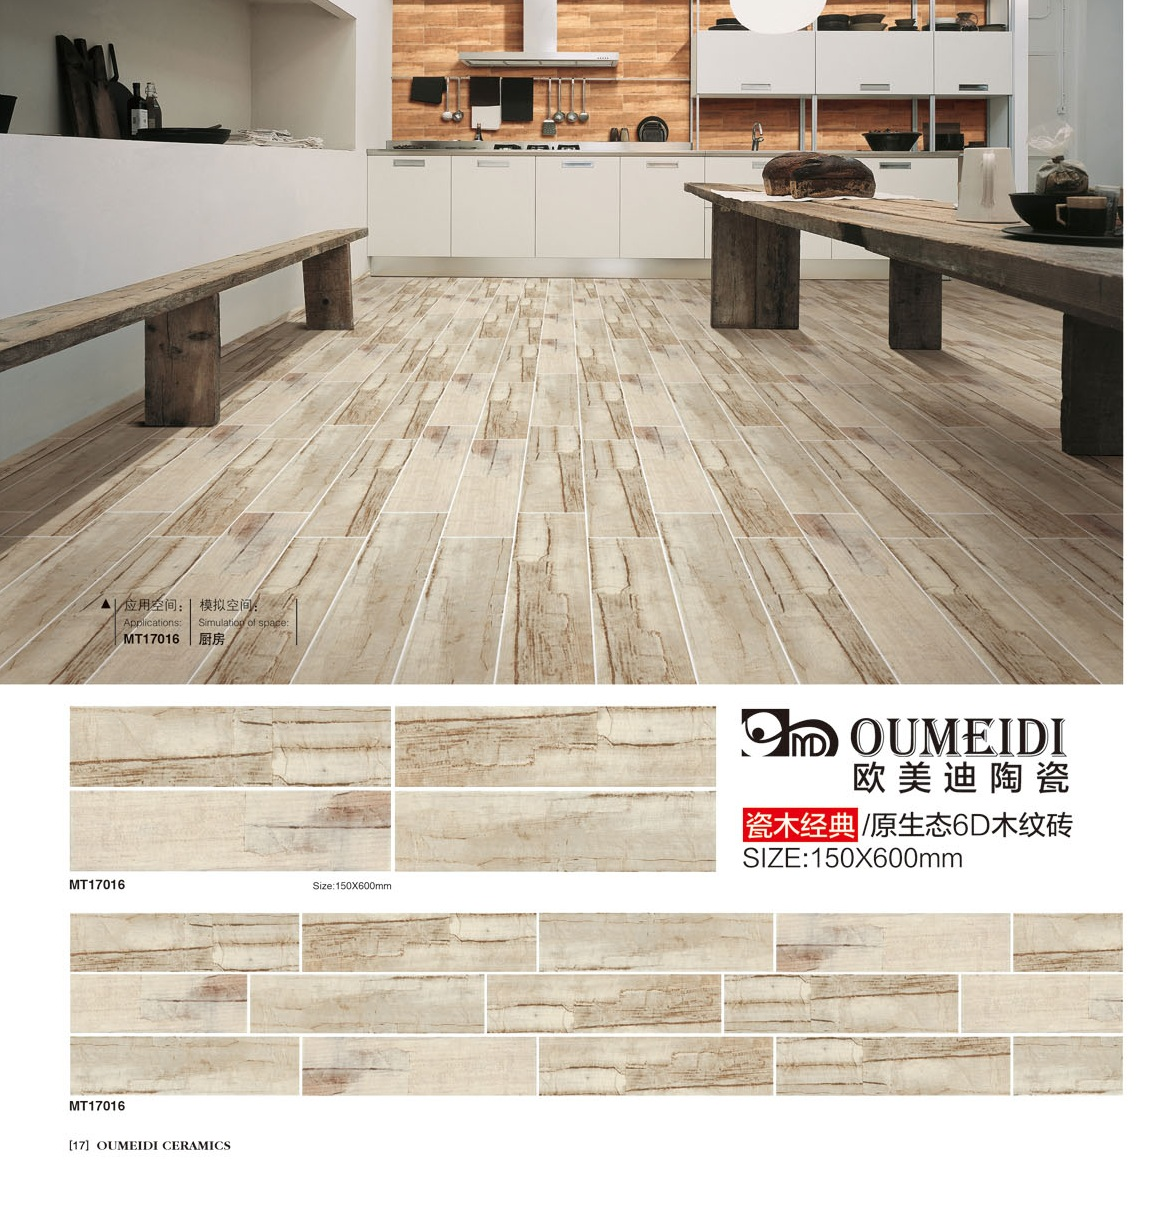 Wood Design Ceramic Tile Rustic Tile Floor Porcelain Tile